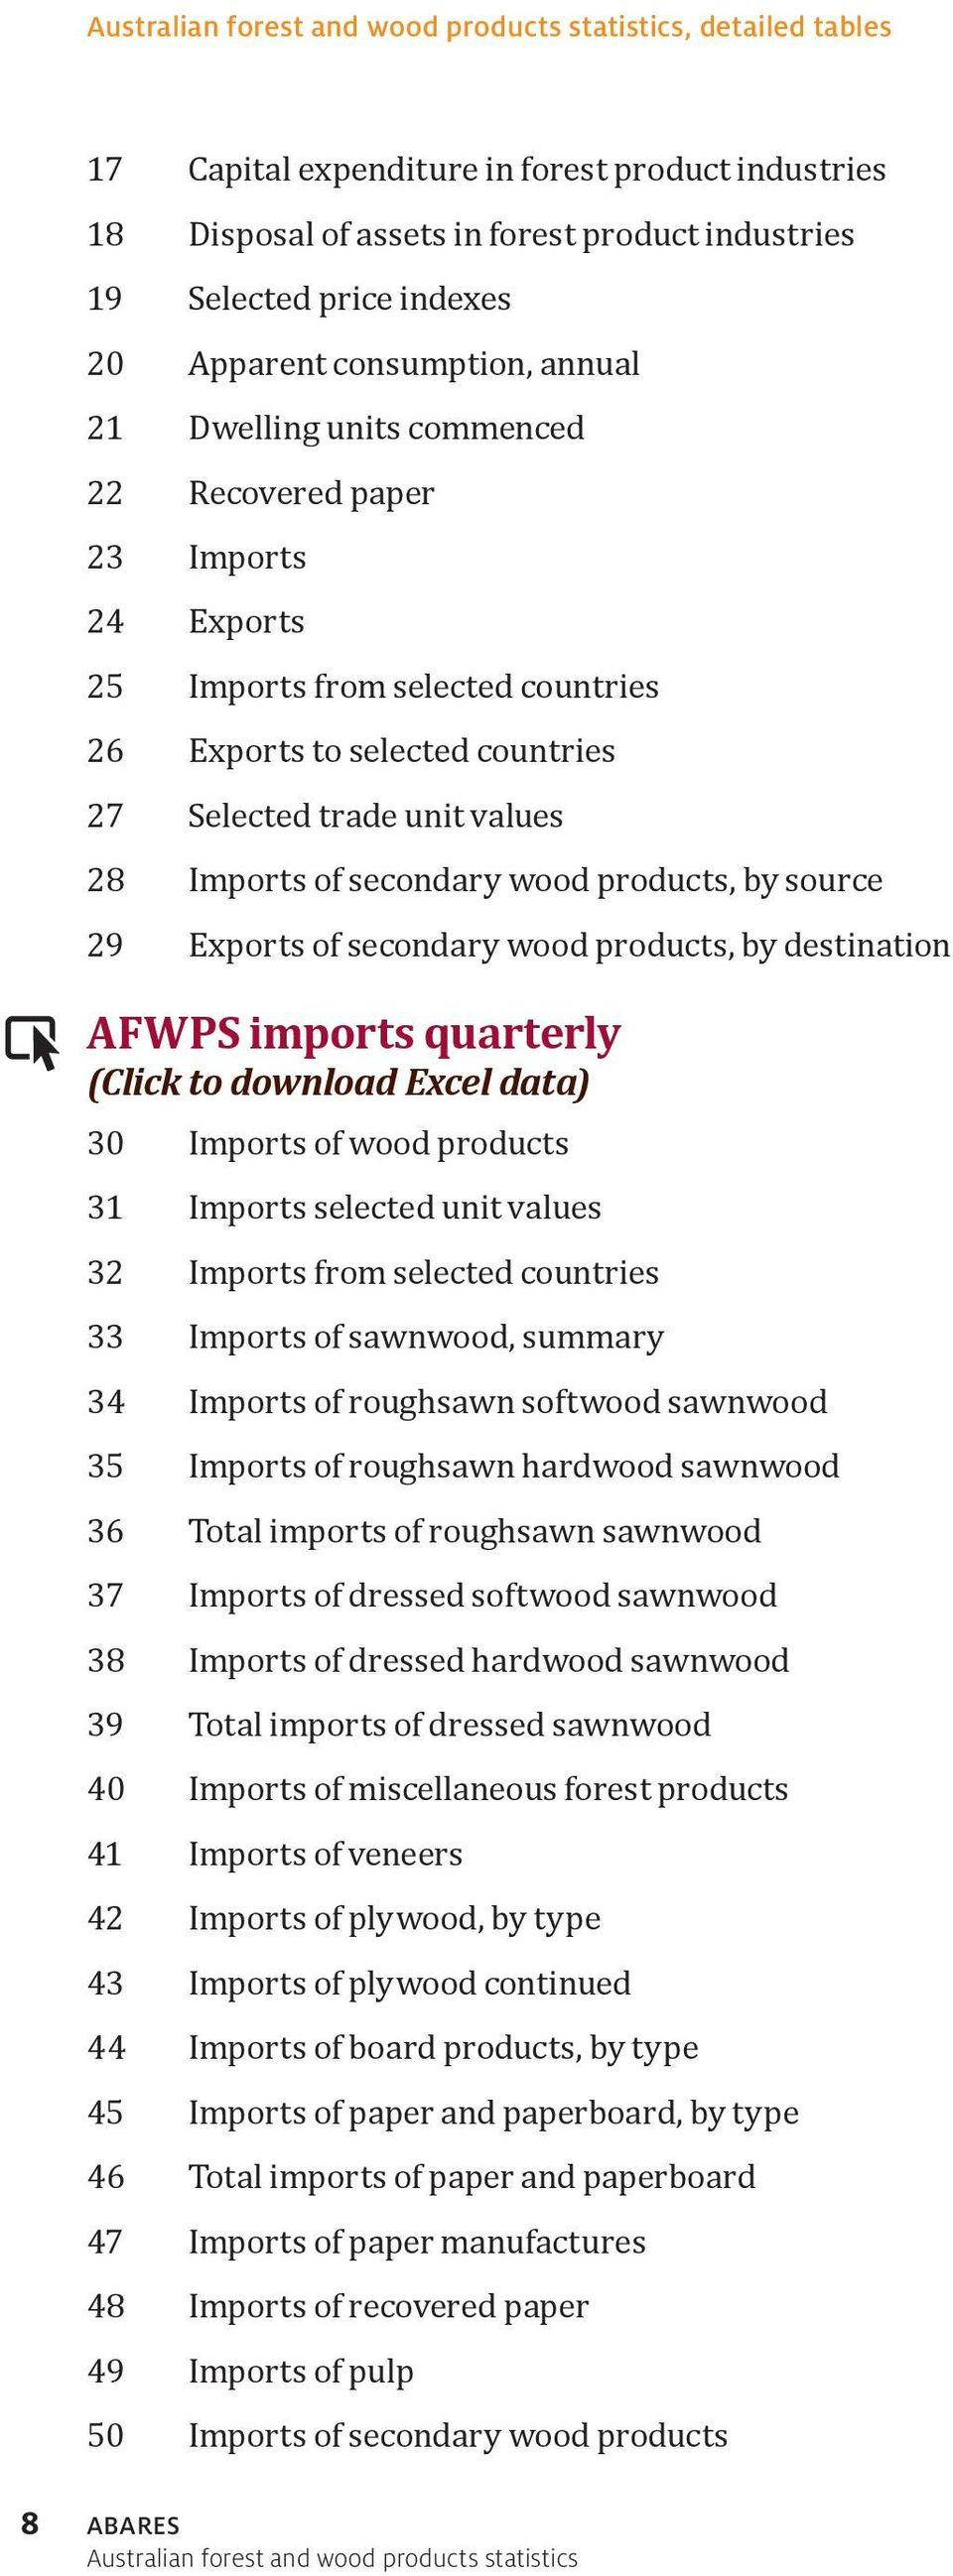 29 Exports of secondary wood products, by destination AFWPS imports quarterly (Click to download Excel data) 30 Imports of wood products 31 Imports selected unit values 32 Imports from selected